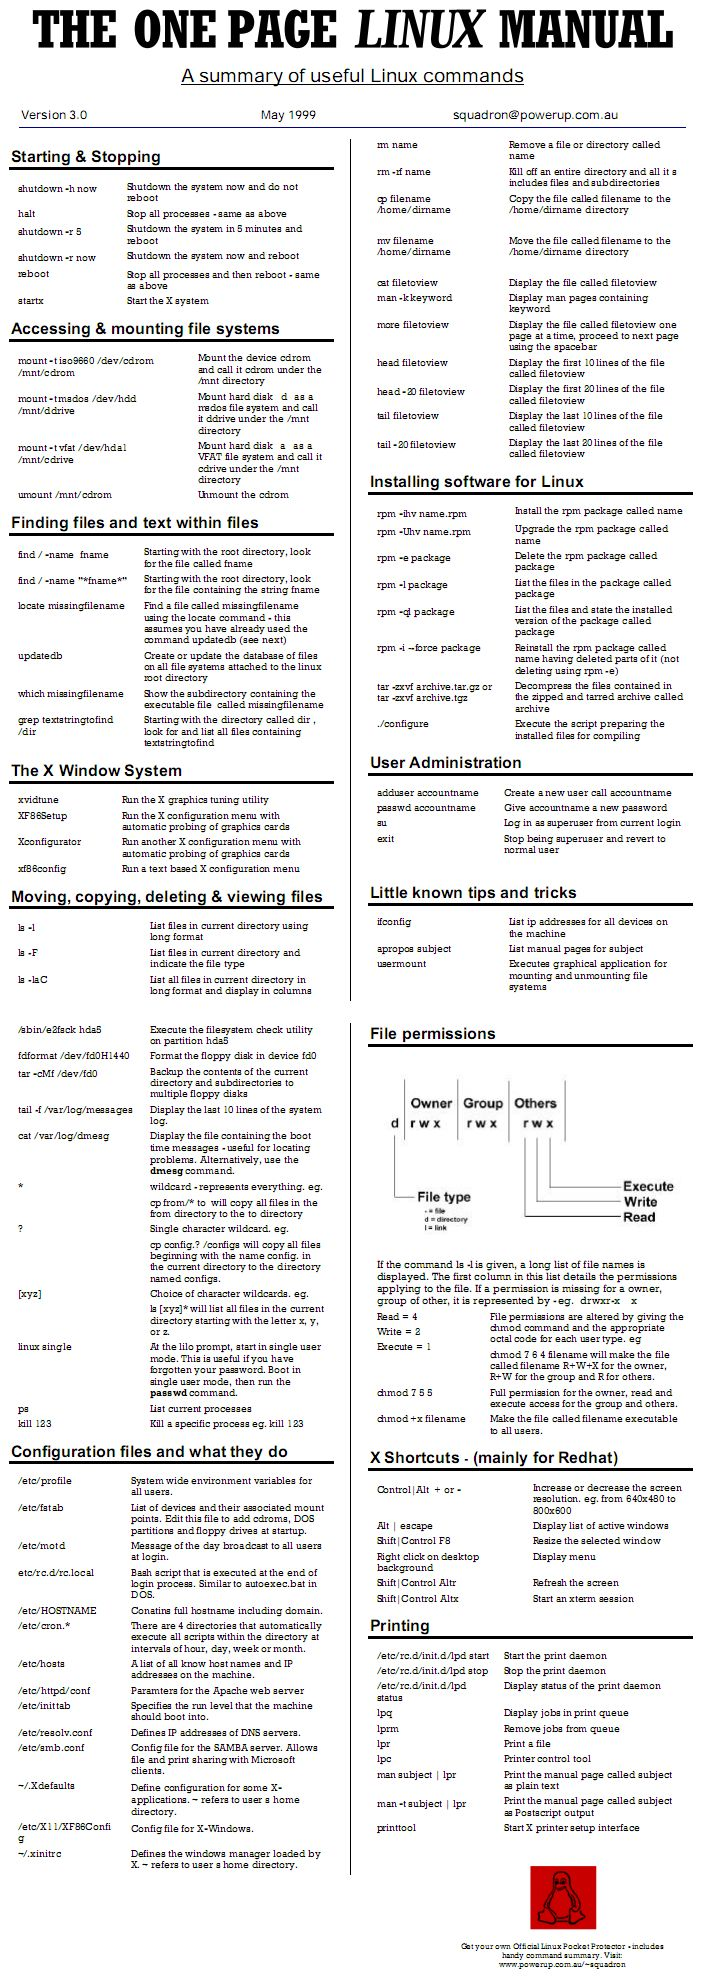 Linux - The One Page Linux Manual